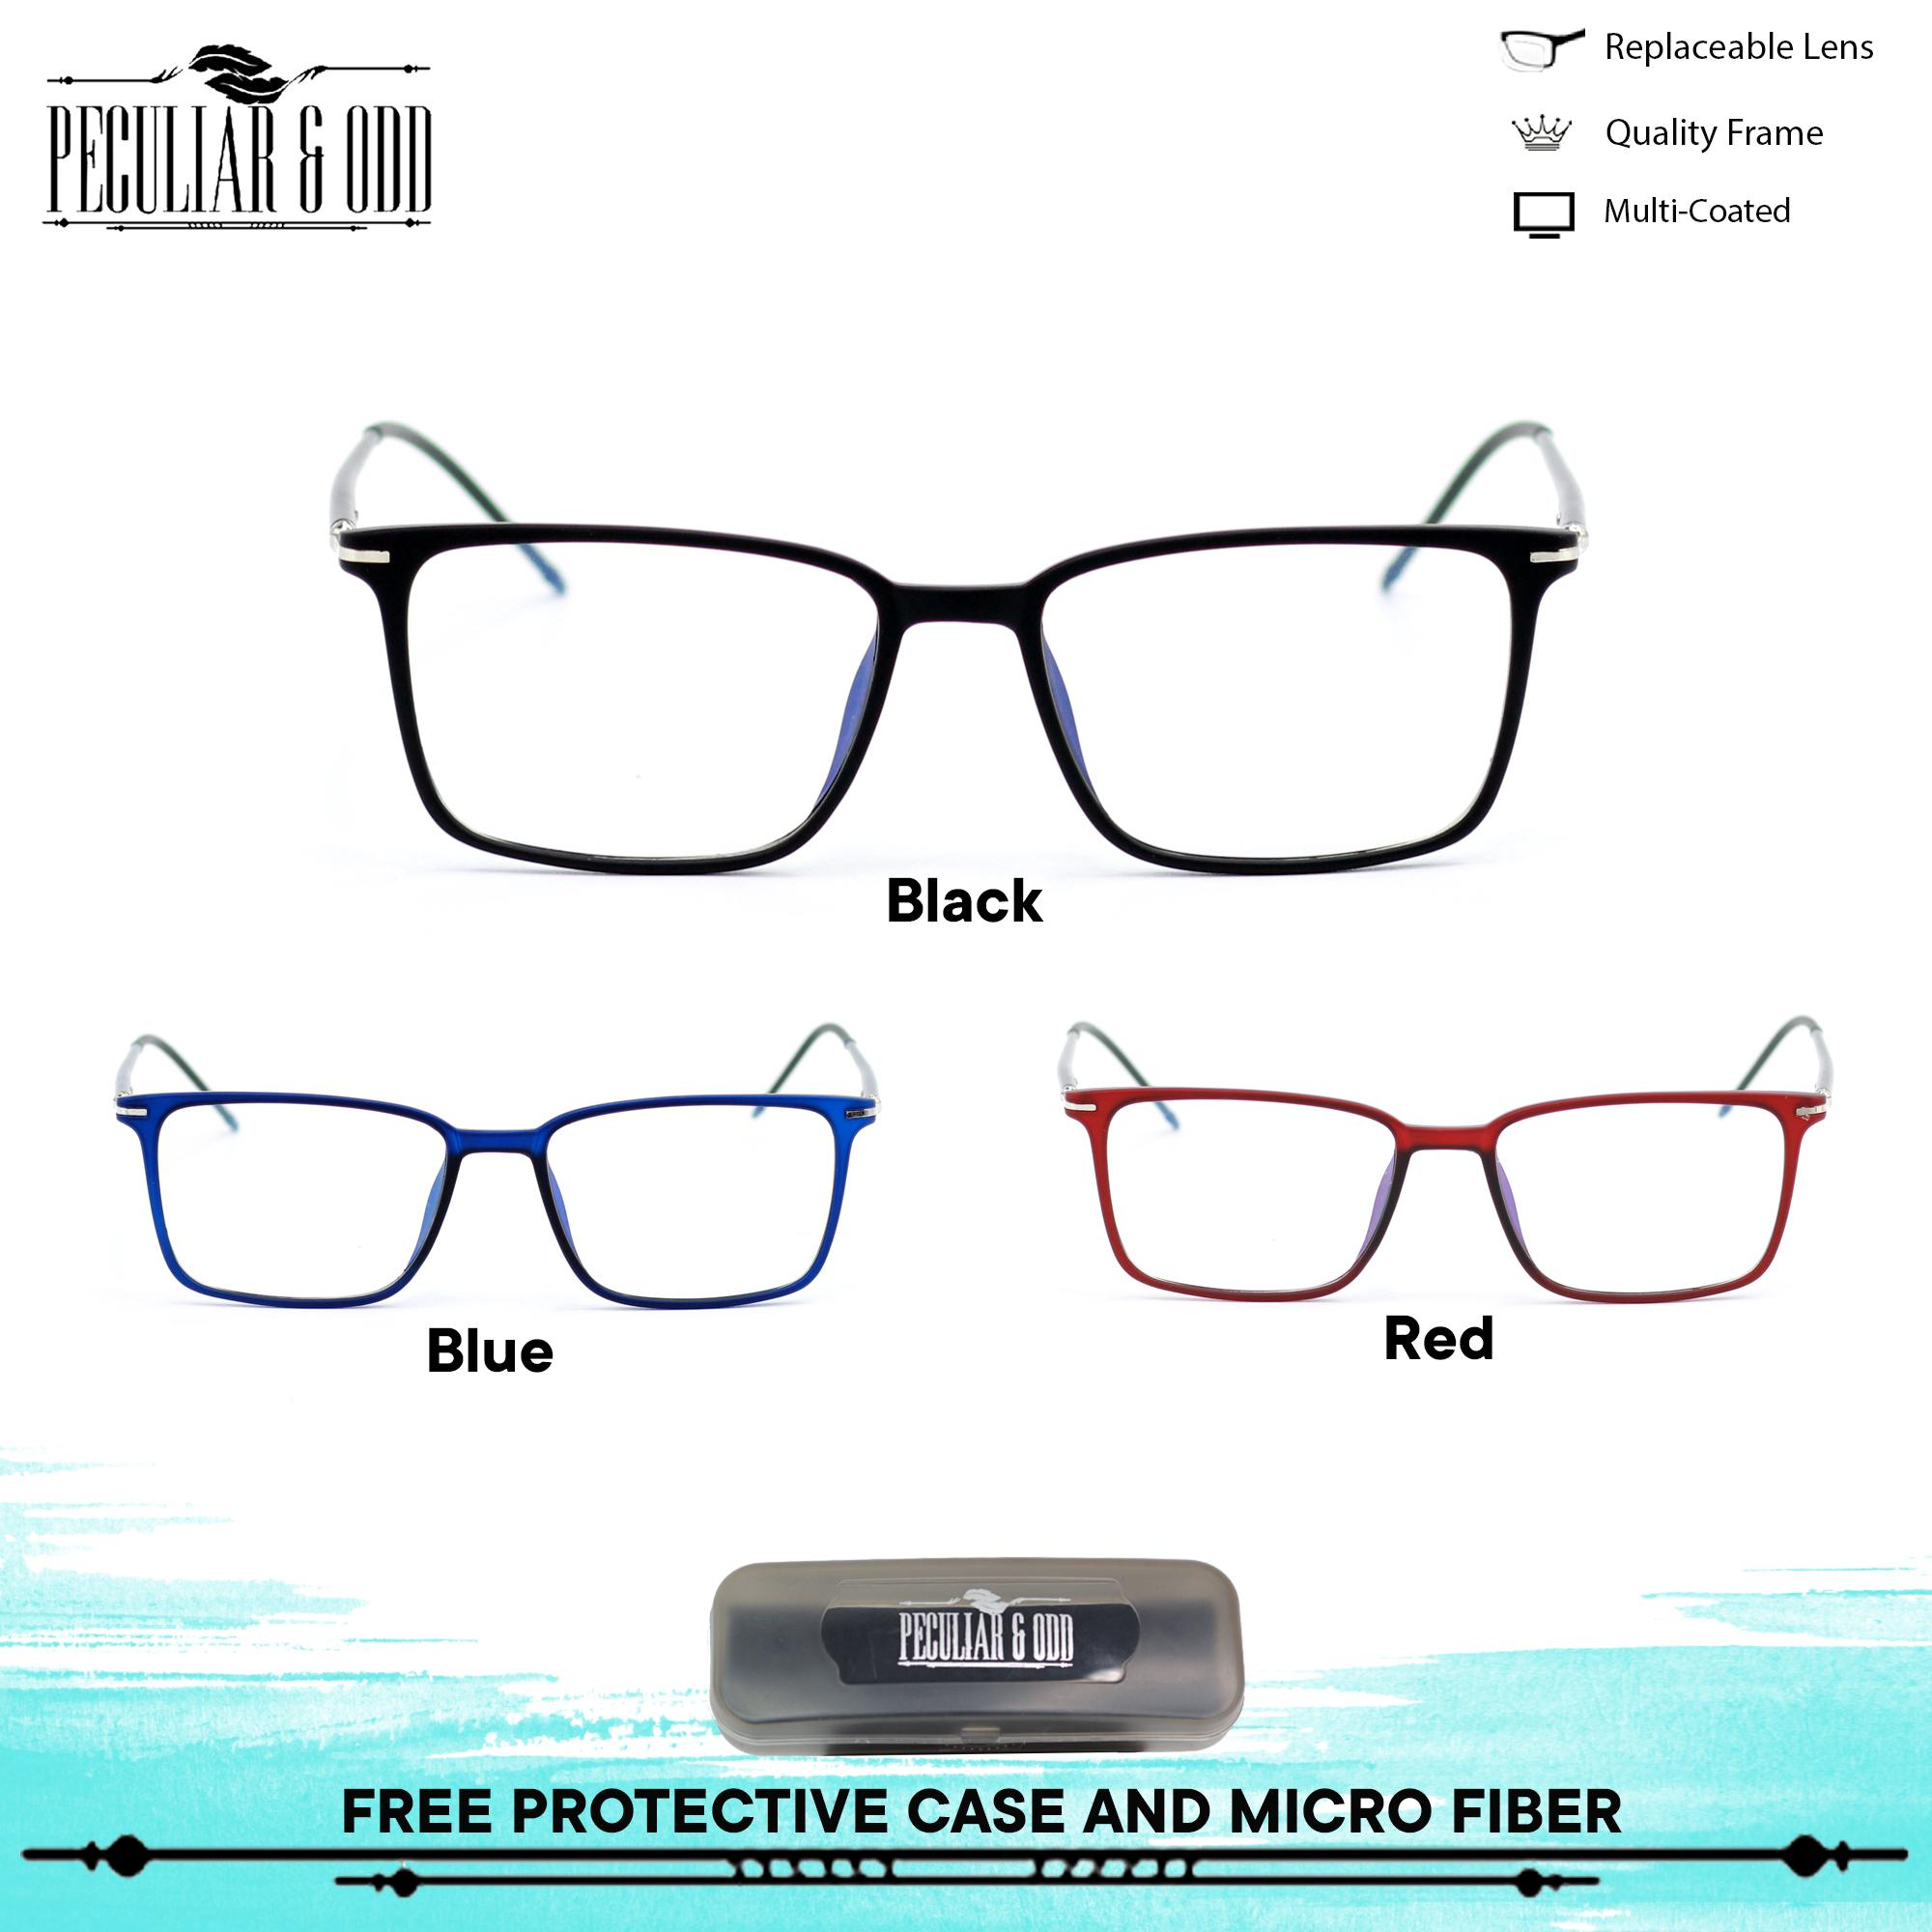 334535536d Peculiar Square Multicoated Eyeglass 122 Flexible Computer Glasses  Replaceable Optical Lens Unisex Eyewear